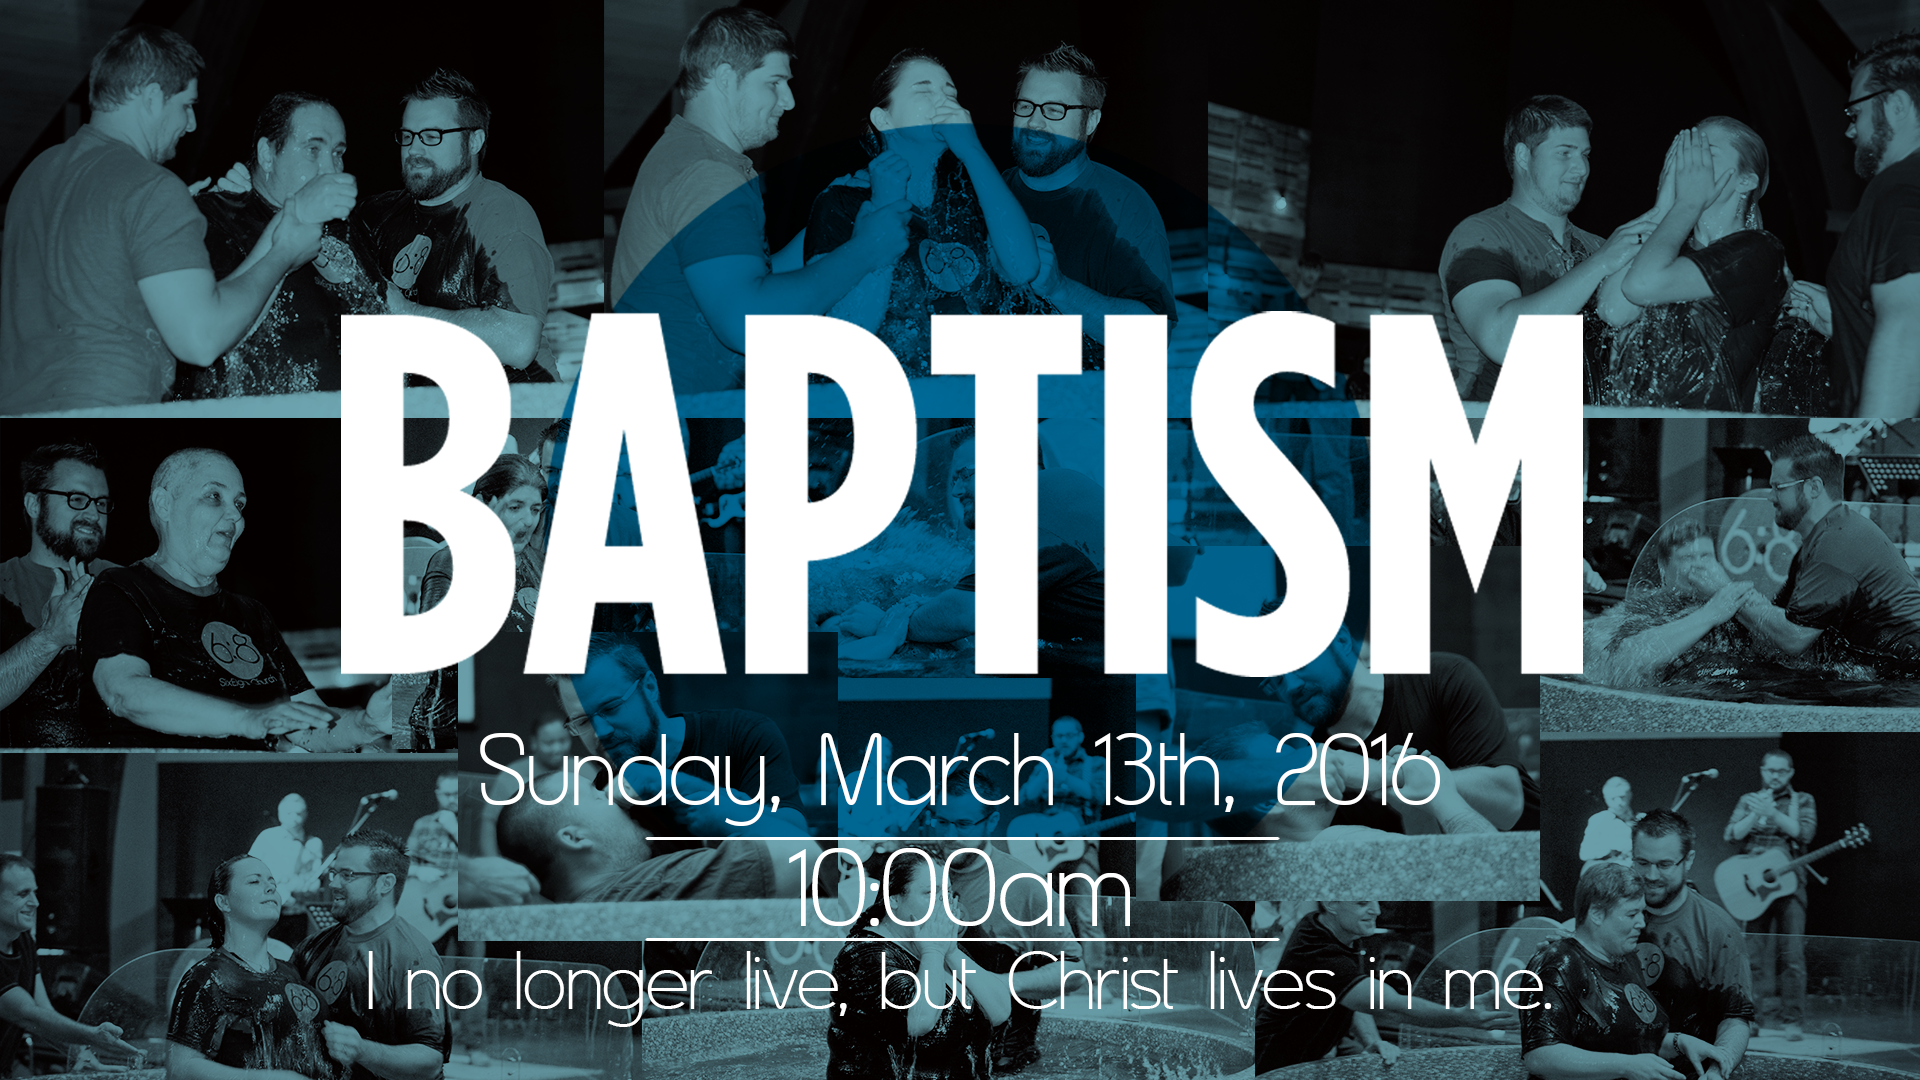 Baptism Sunday, March 13, 2016 (Part II)